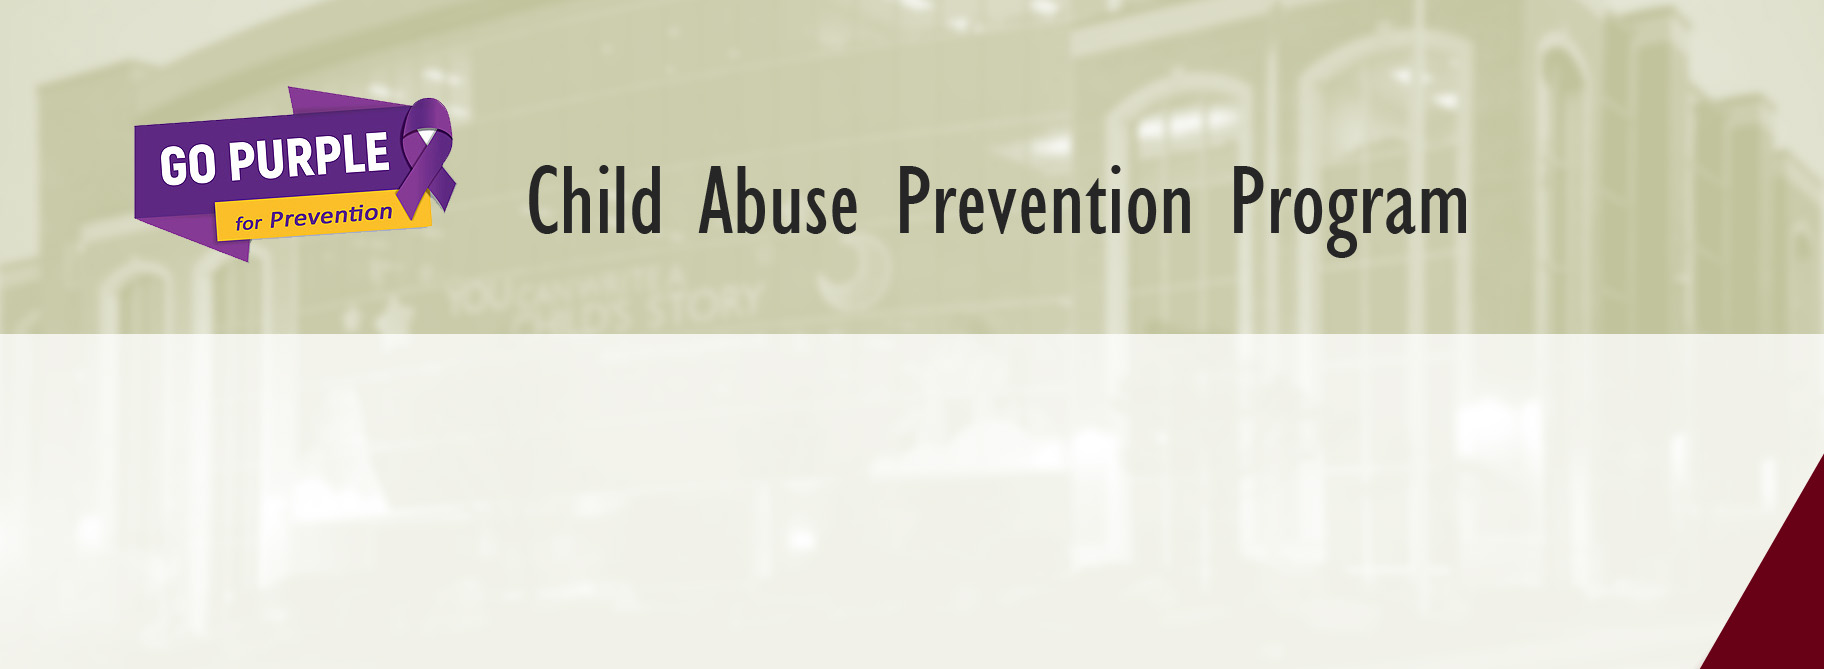 Child Abuse Prevention Program